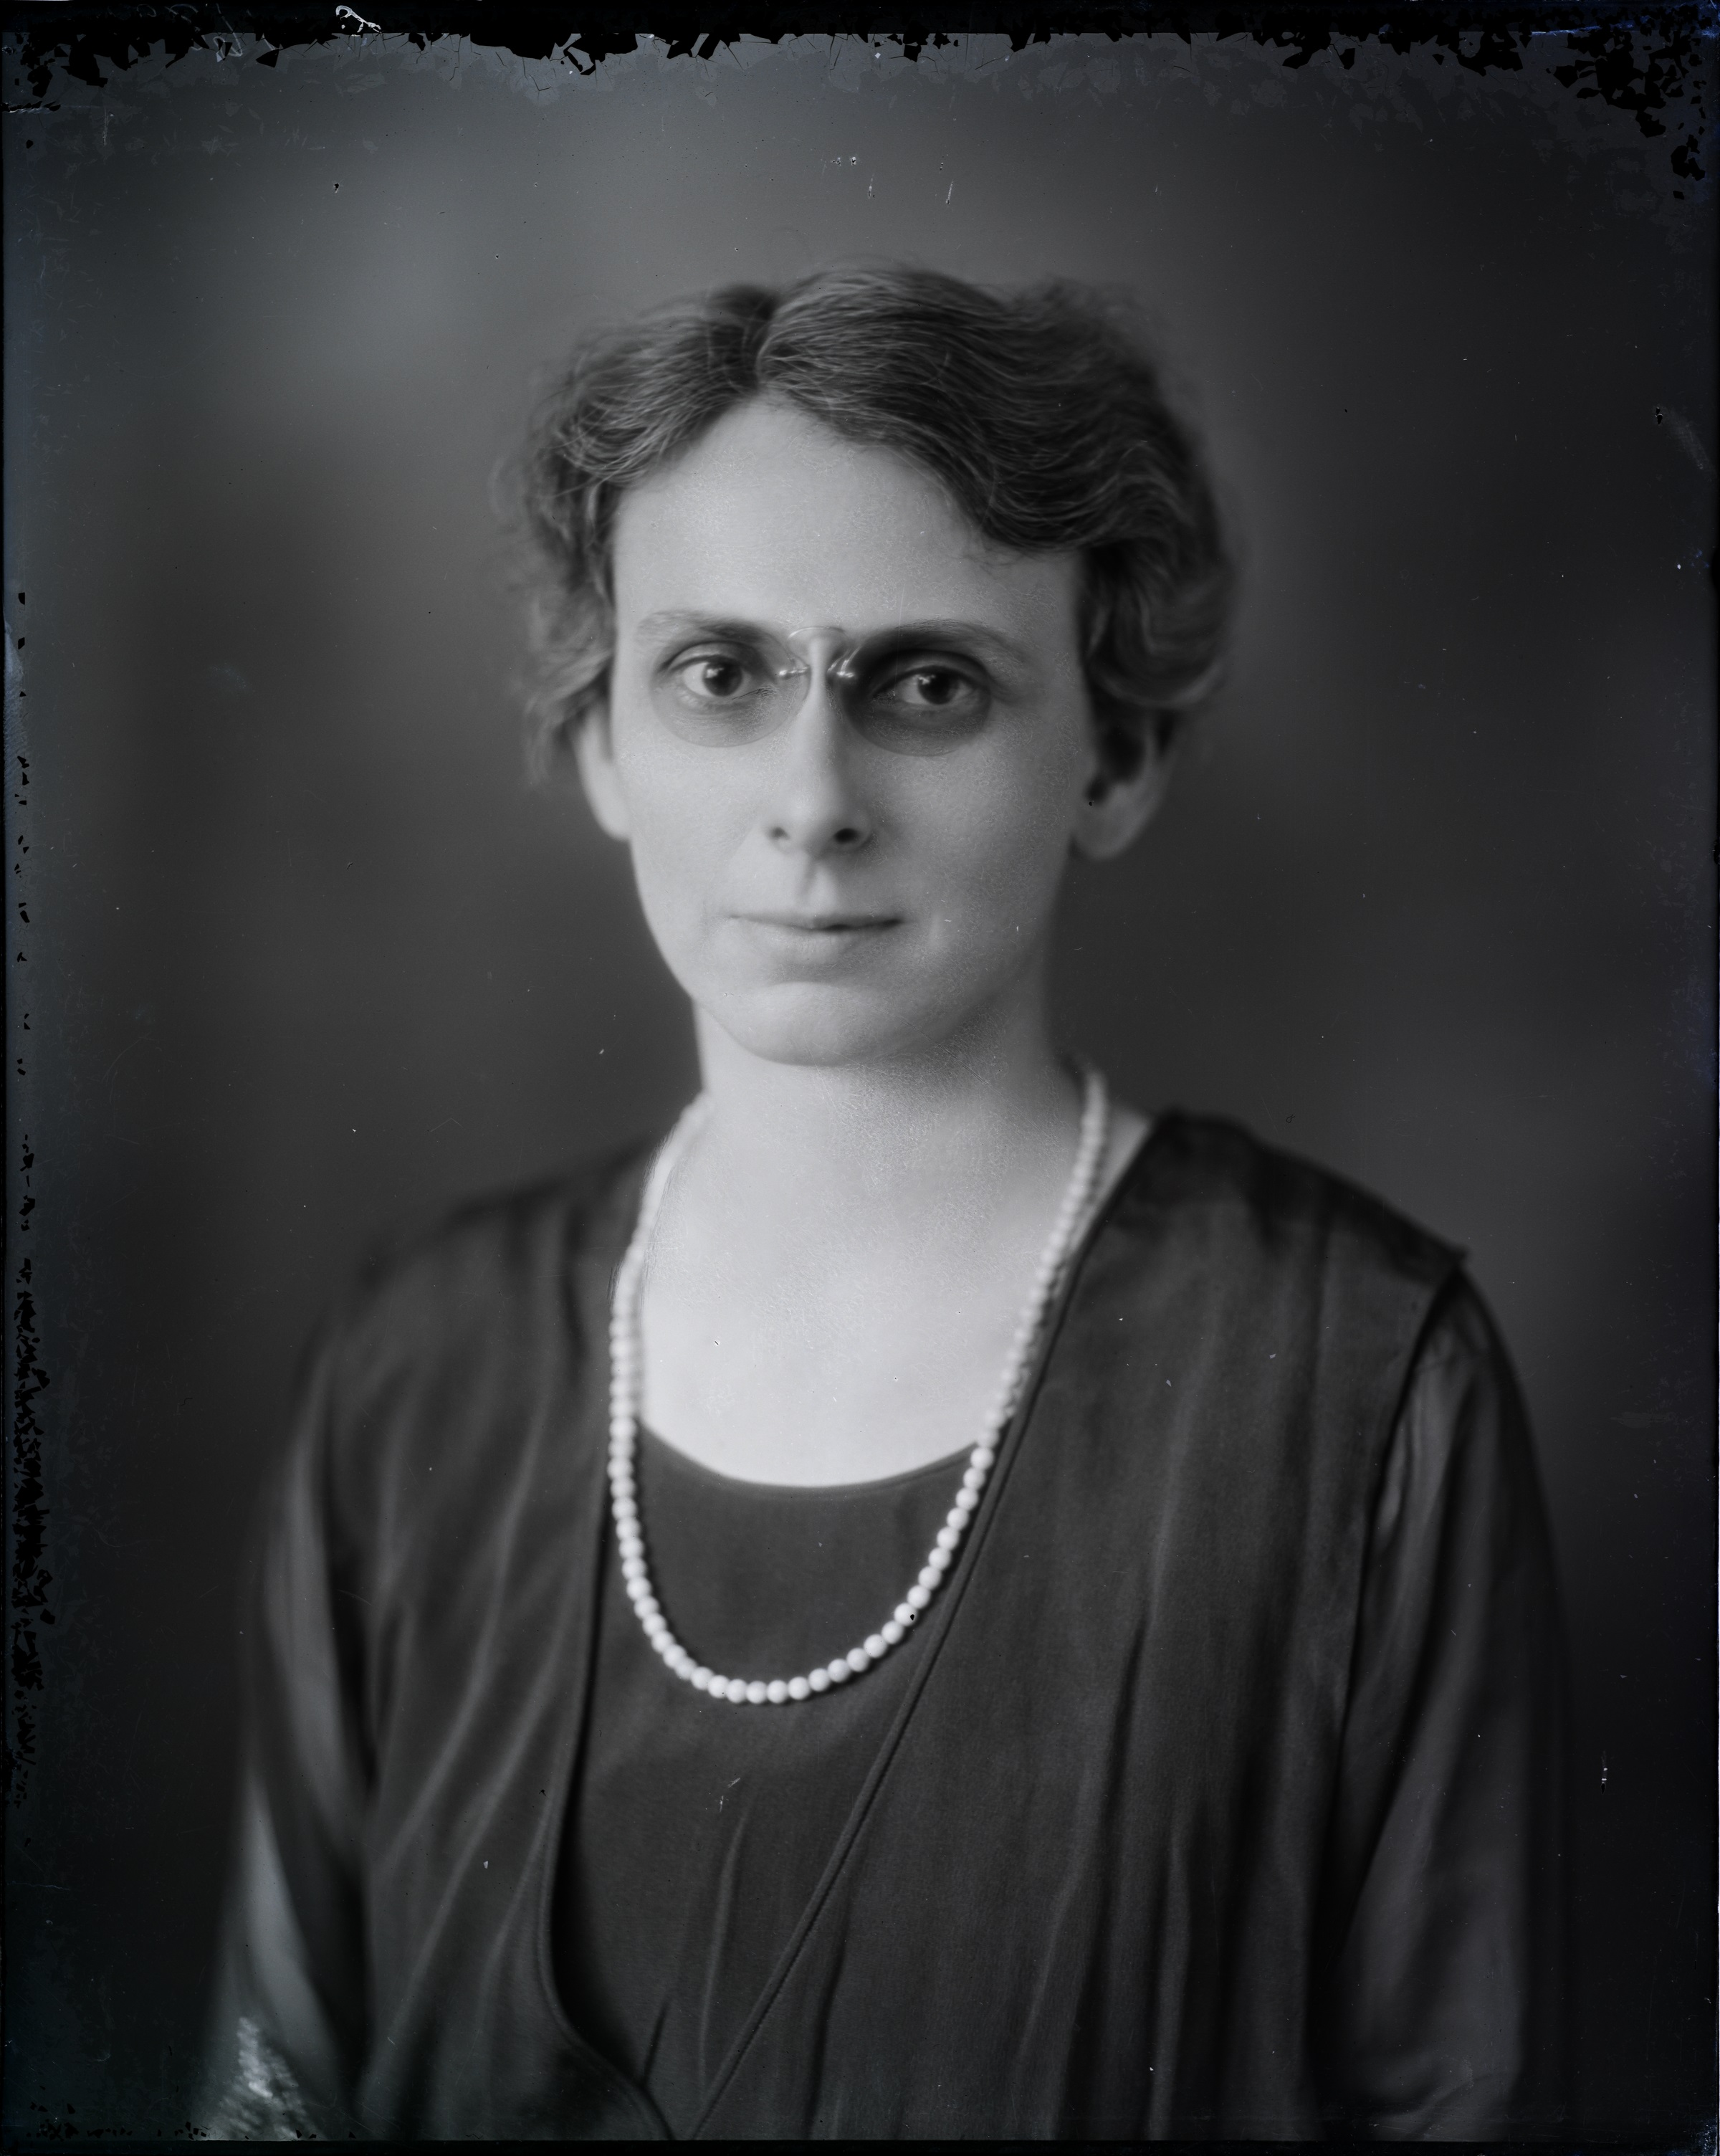 Photograph of Lucy Randolph Mason courtesy Virginia Museum of History and Culture.